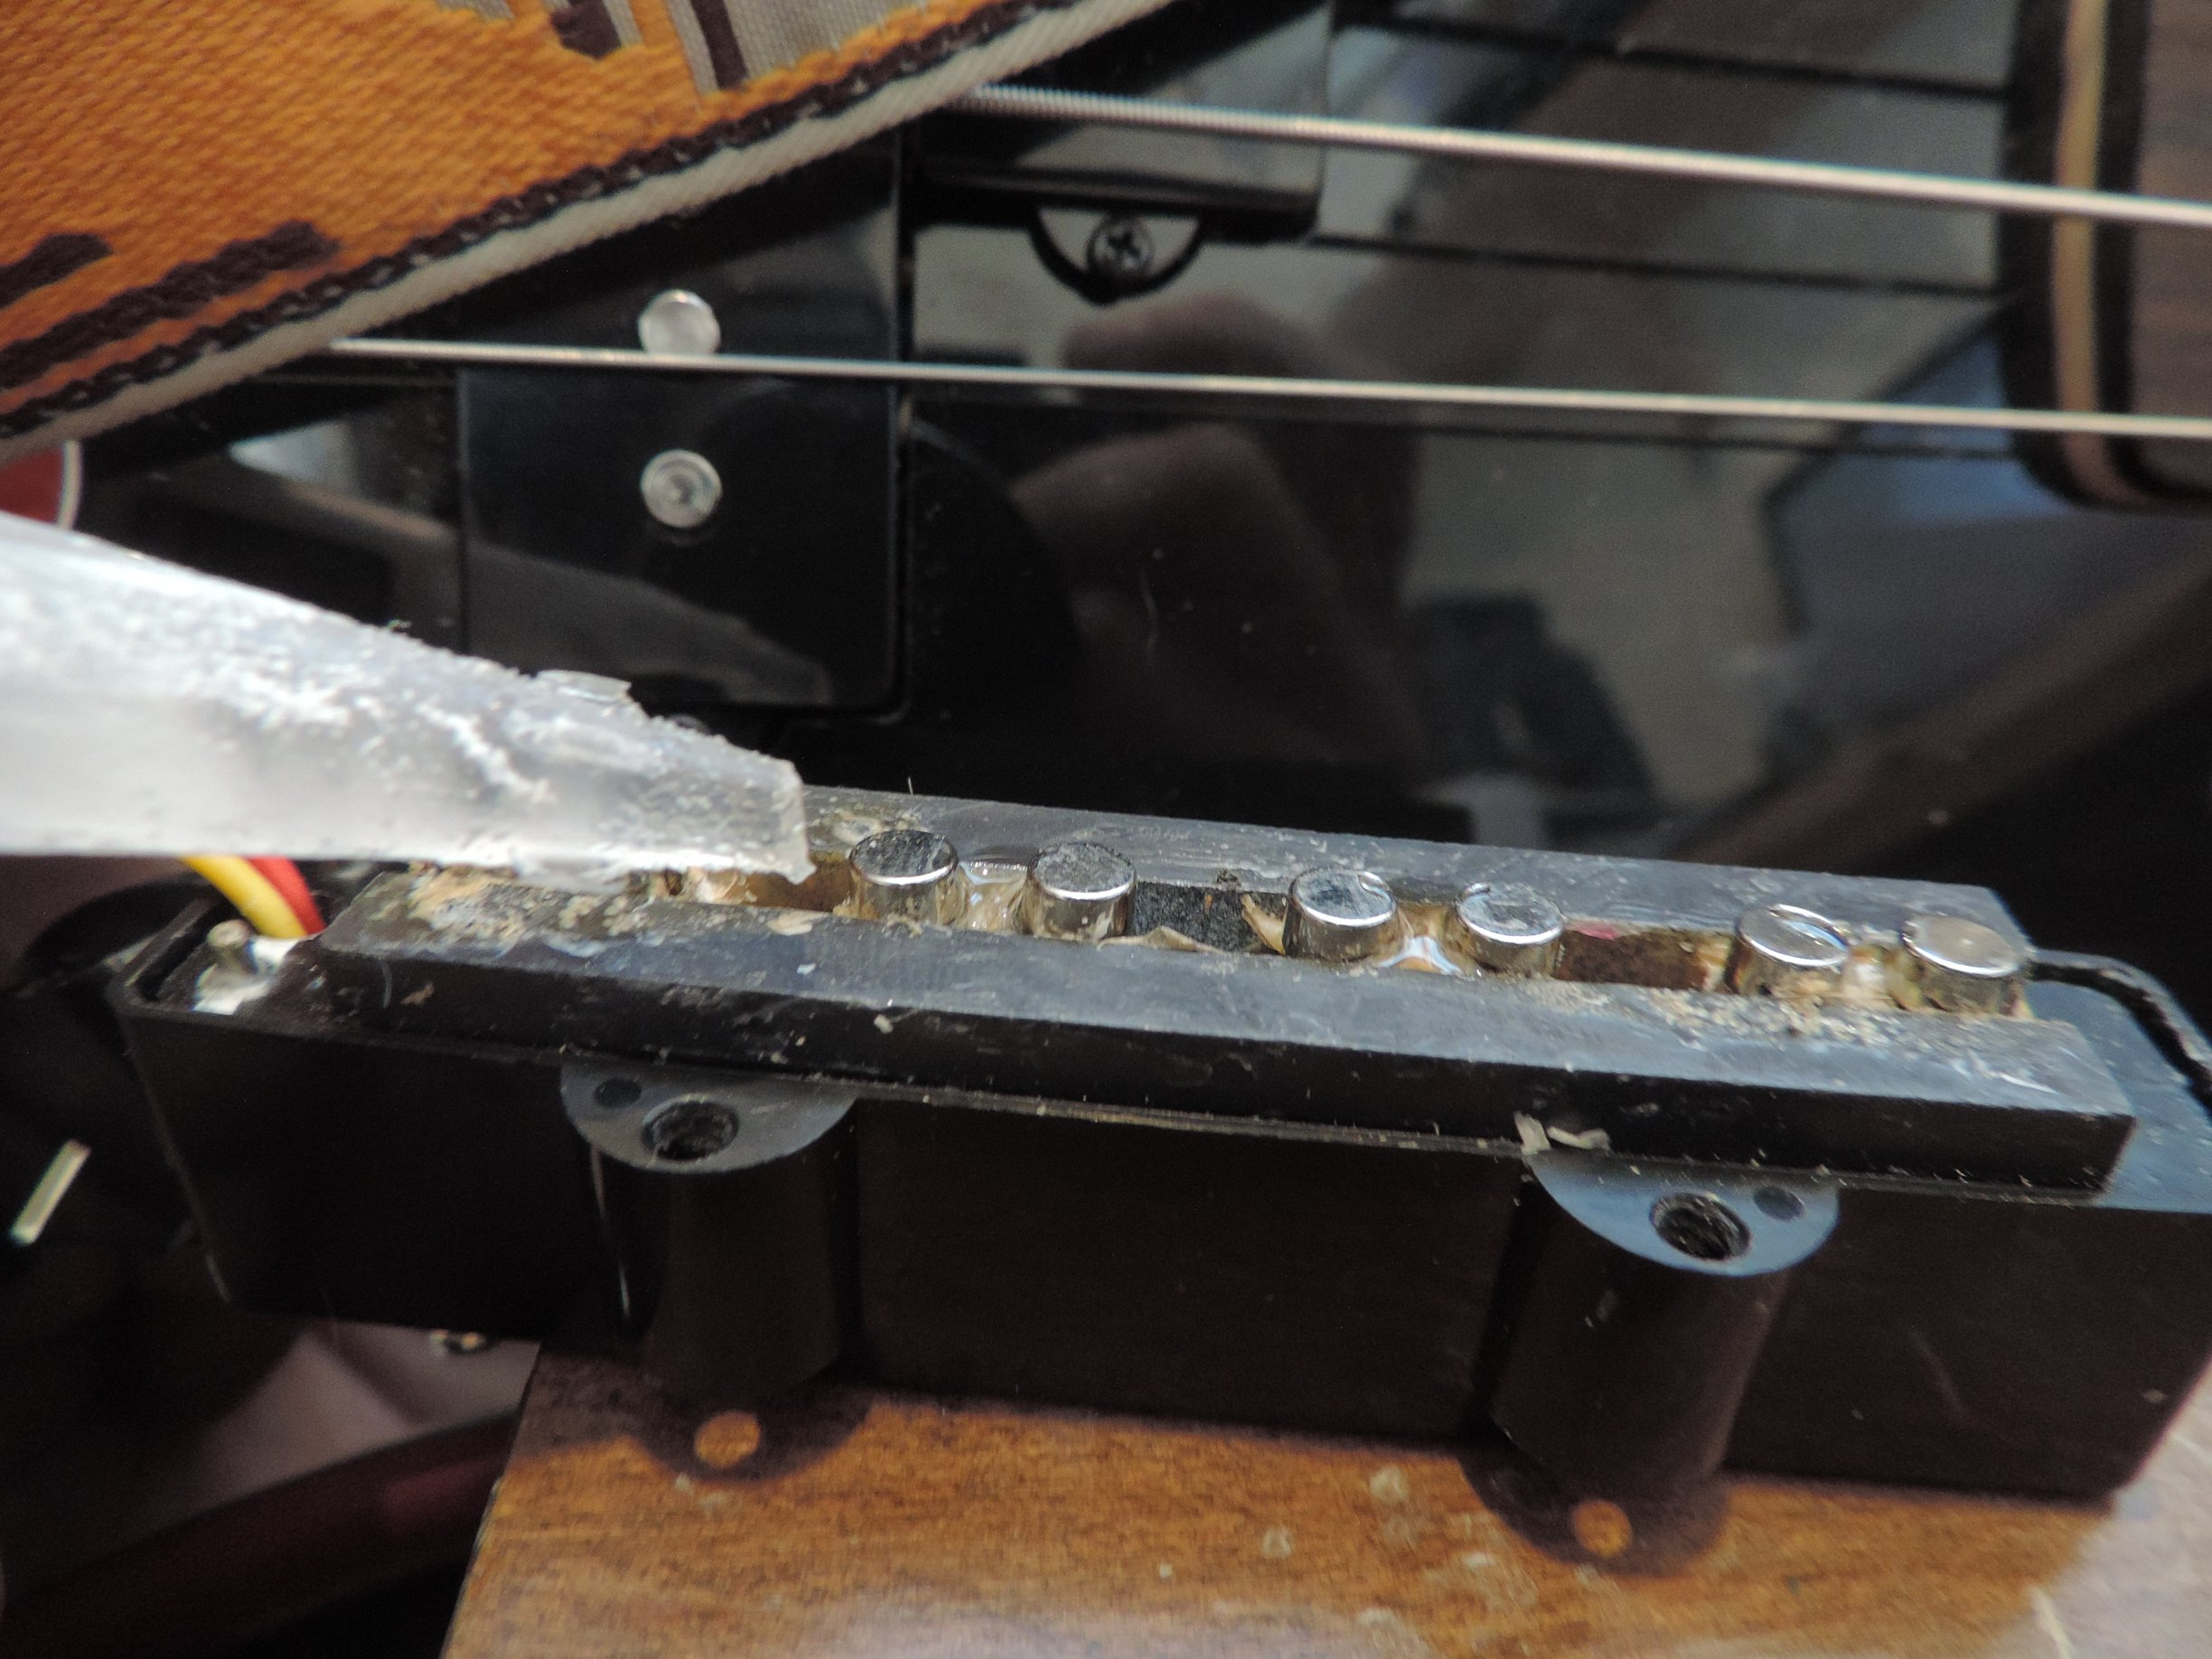 Gluing magnets in place on the pickup